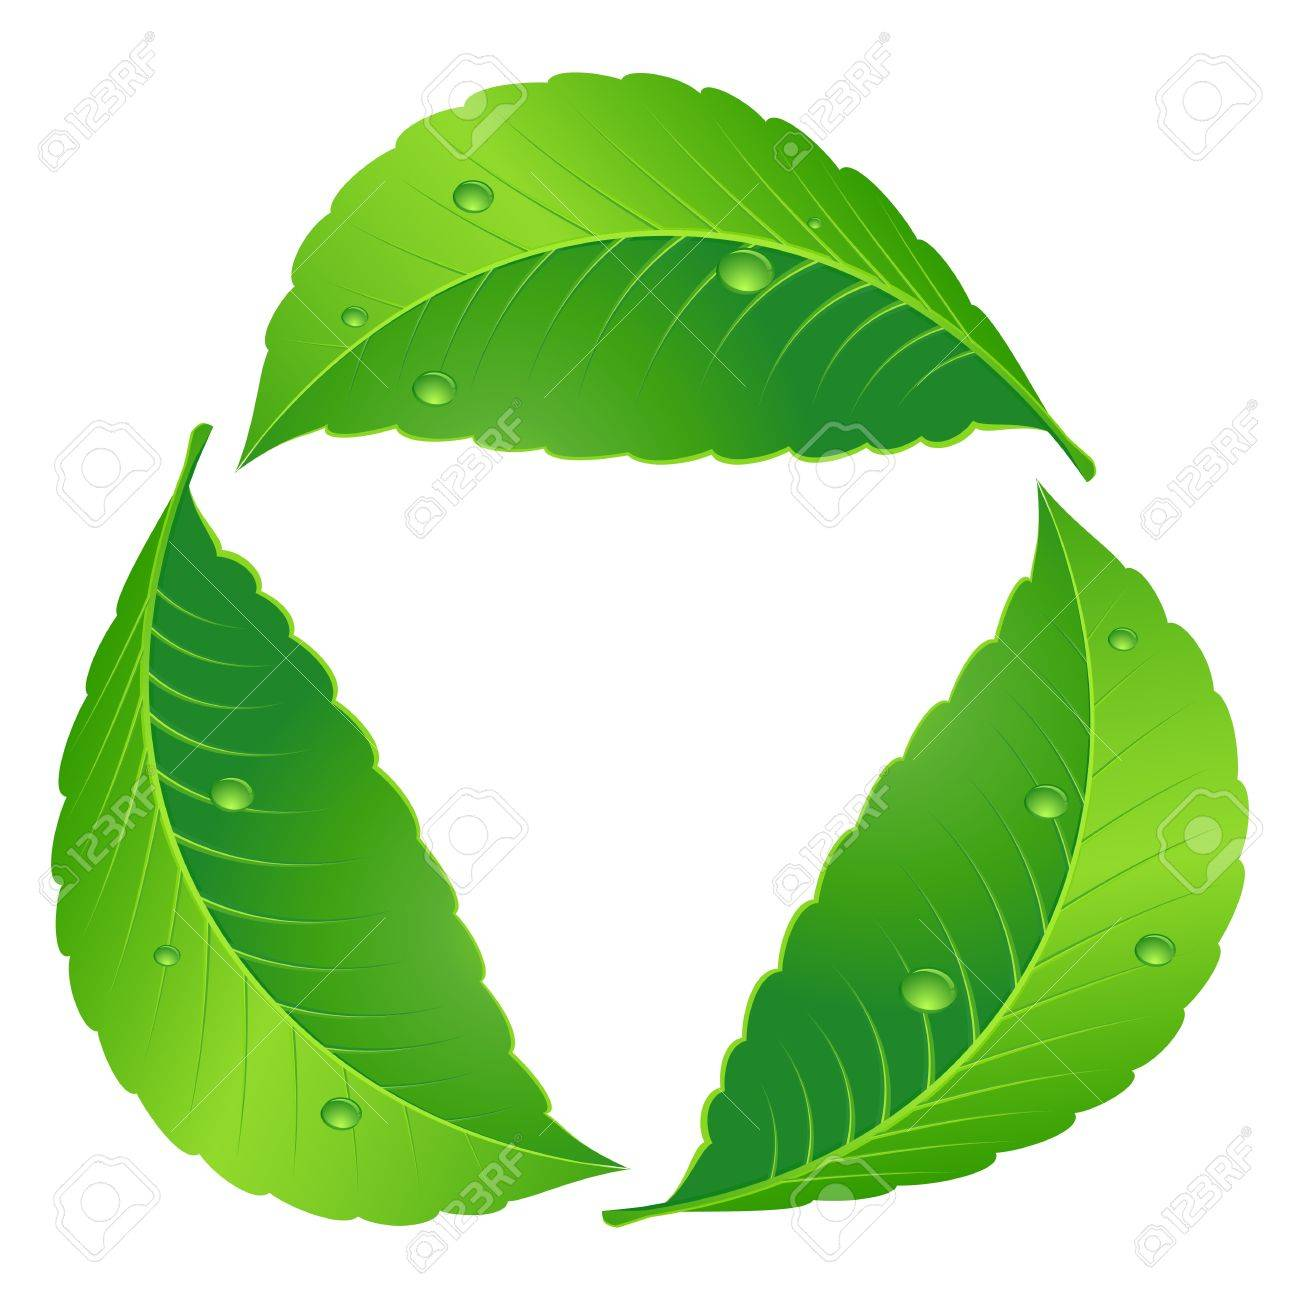 Symbol of recycle. Leaf concept. Illustration on white Stock Vector - 15495146